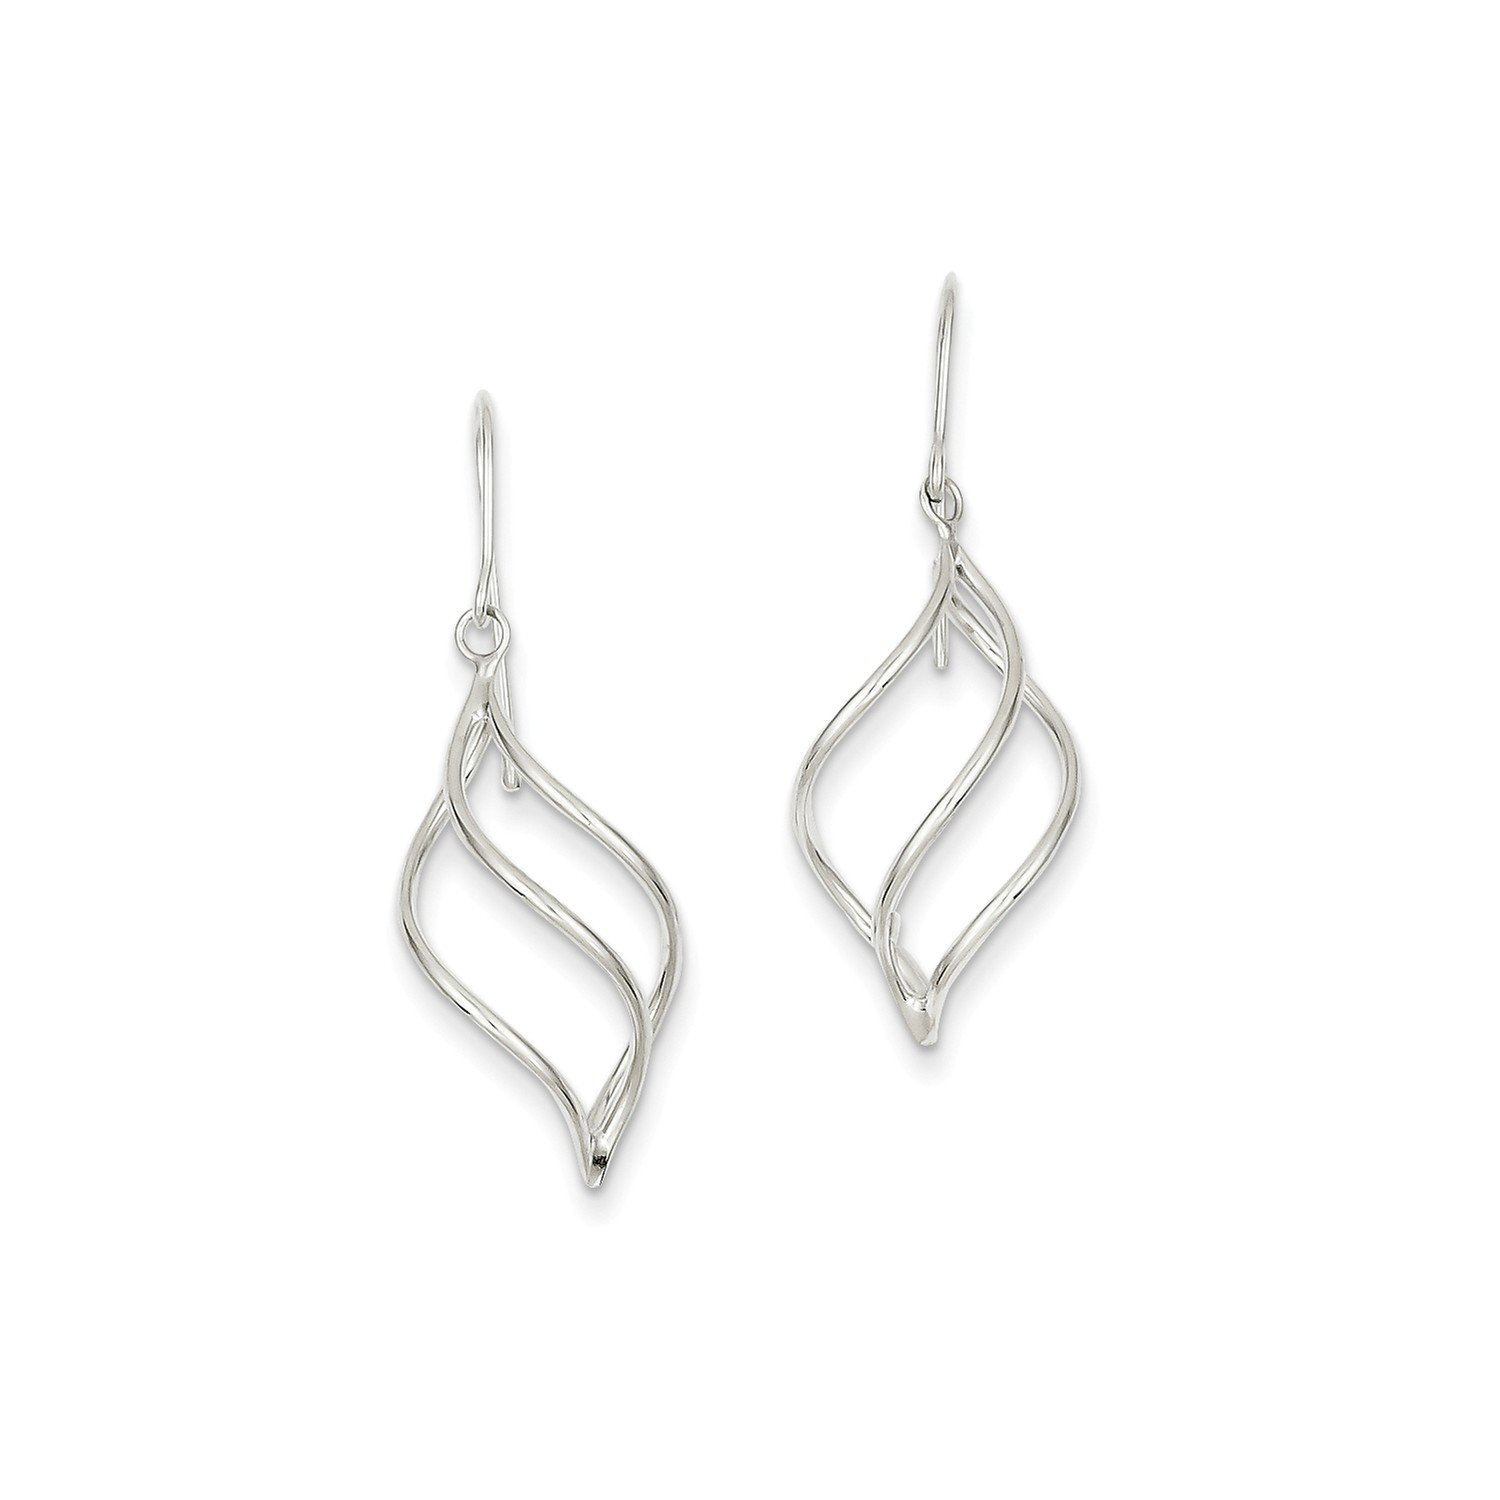 Roy Rose Jewelry 14K White Gold Polished Short Twisted Dangle Earrings